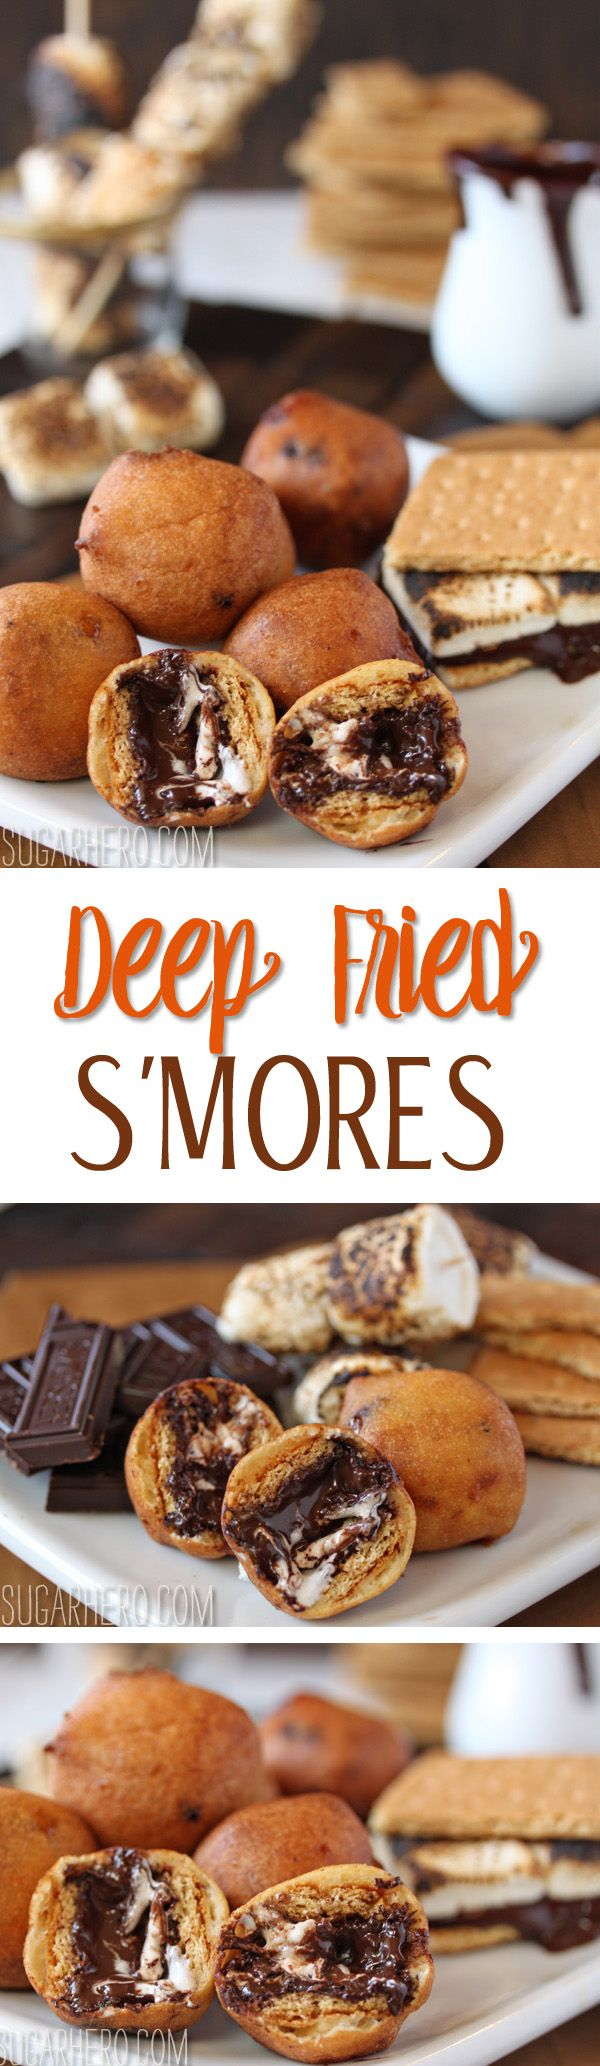 Deep Fried S'mores - the best new way to enjoy s'mores! With melted chocolate and marshmallows in every bite. | From SugarHero.com